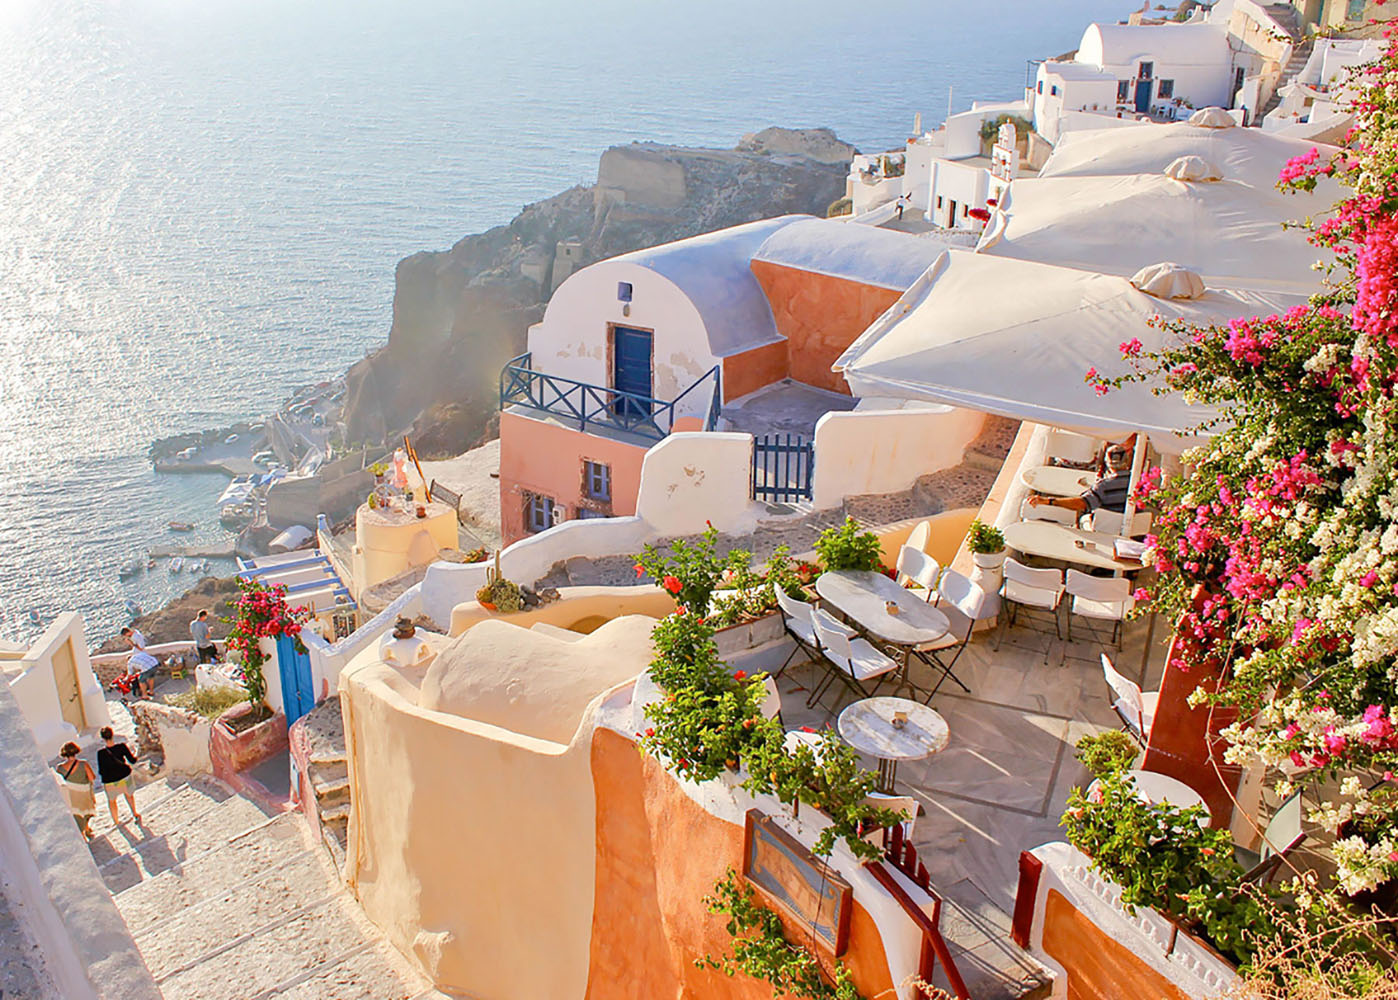 Santorini, Greece is a must-see!